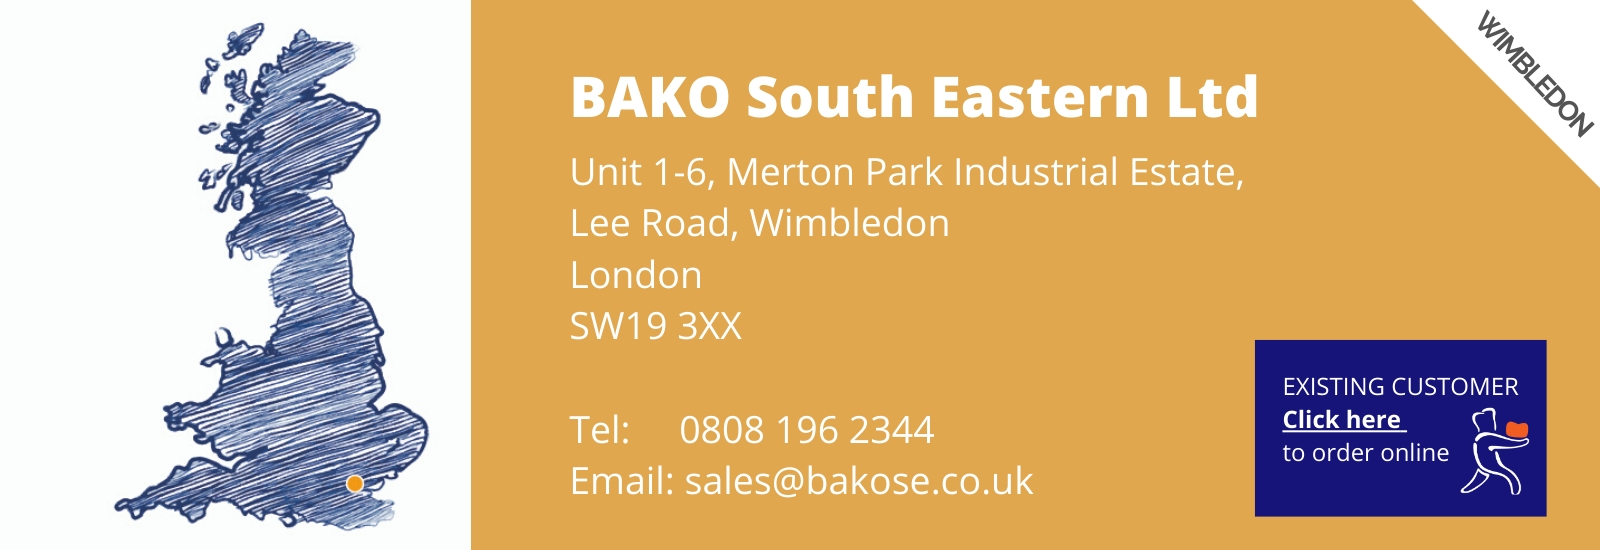 How to order BAKO South Eastern